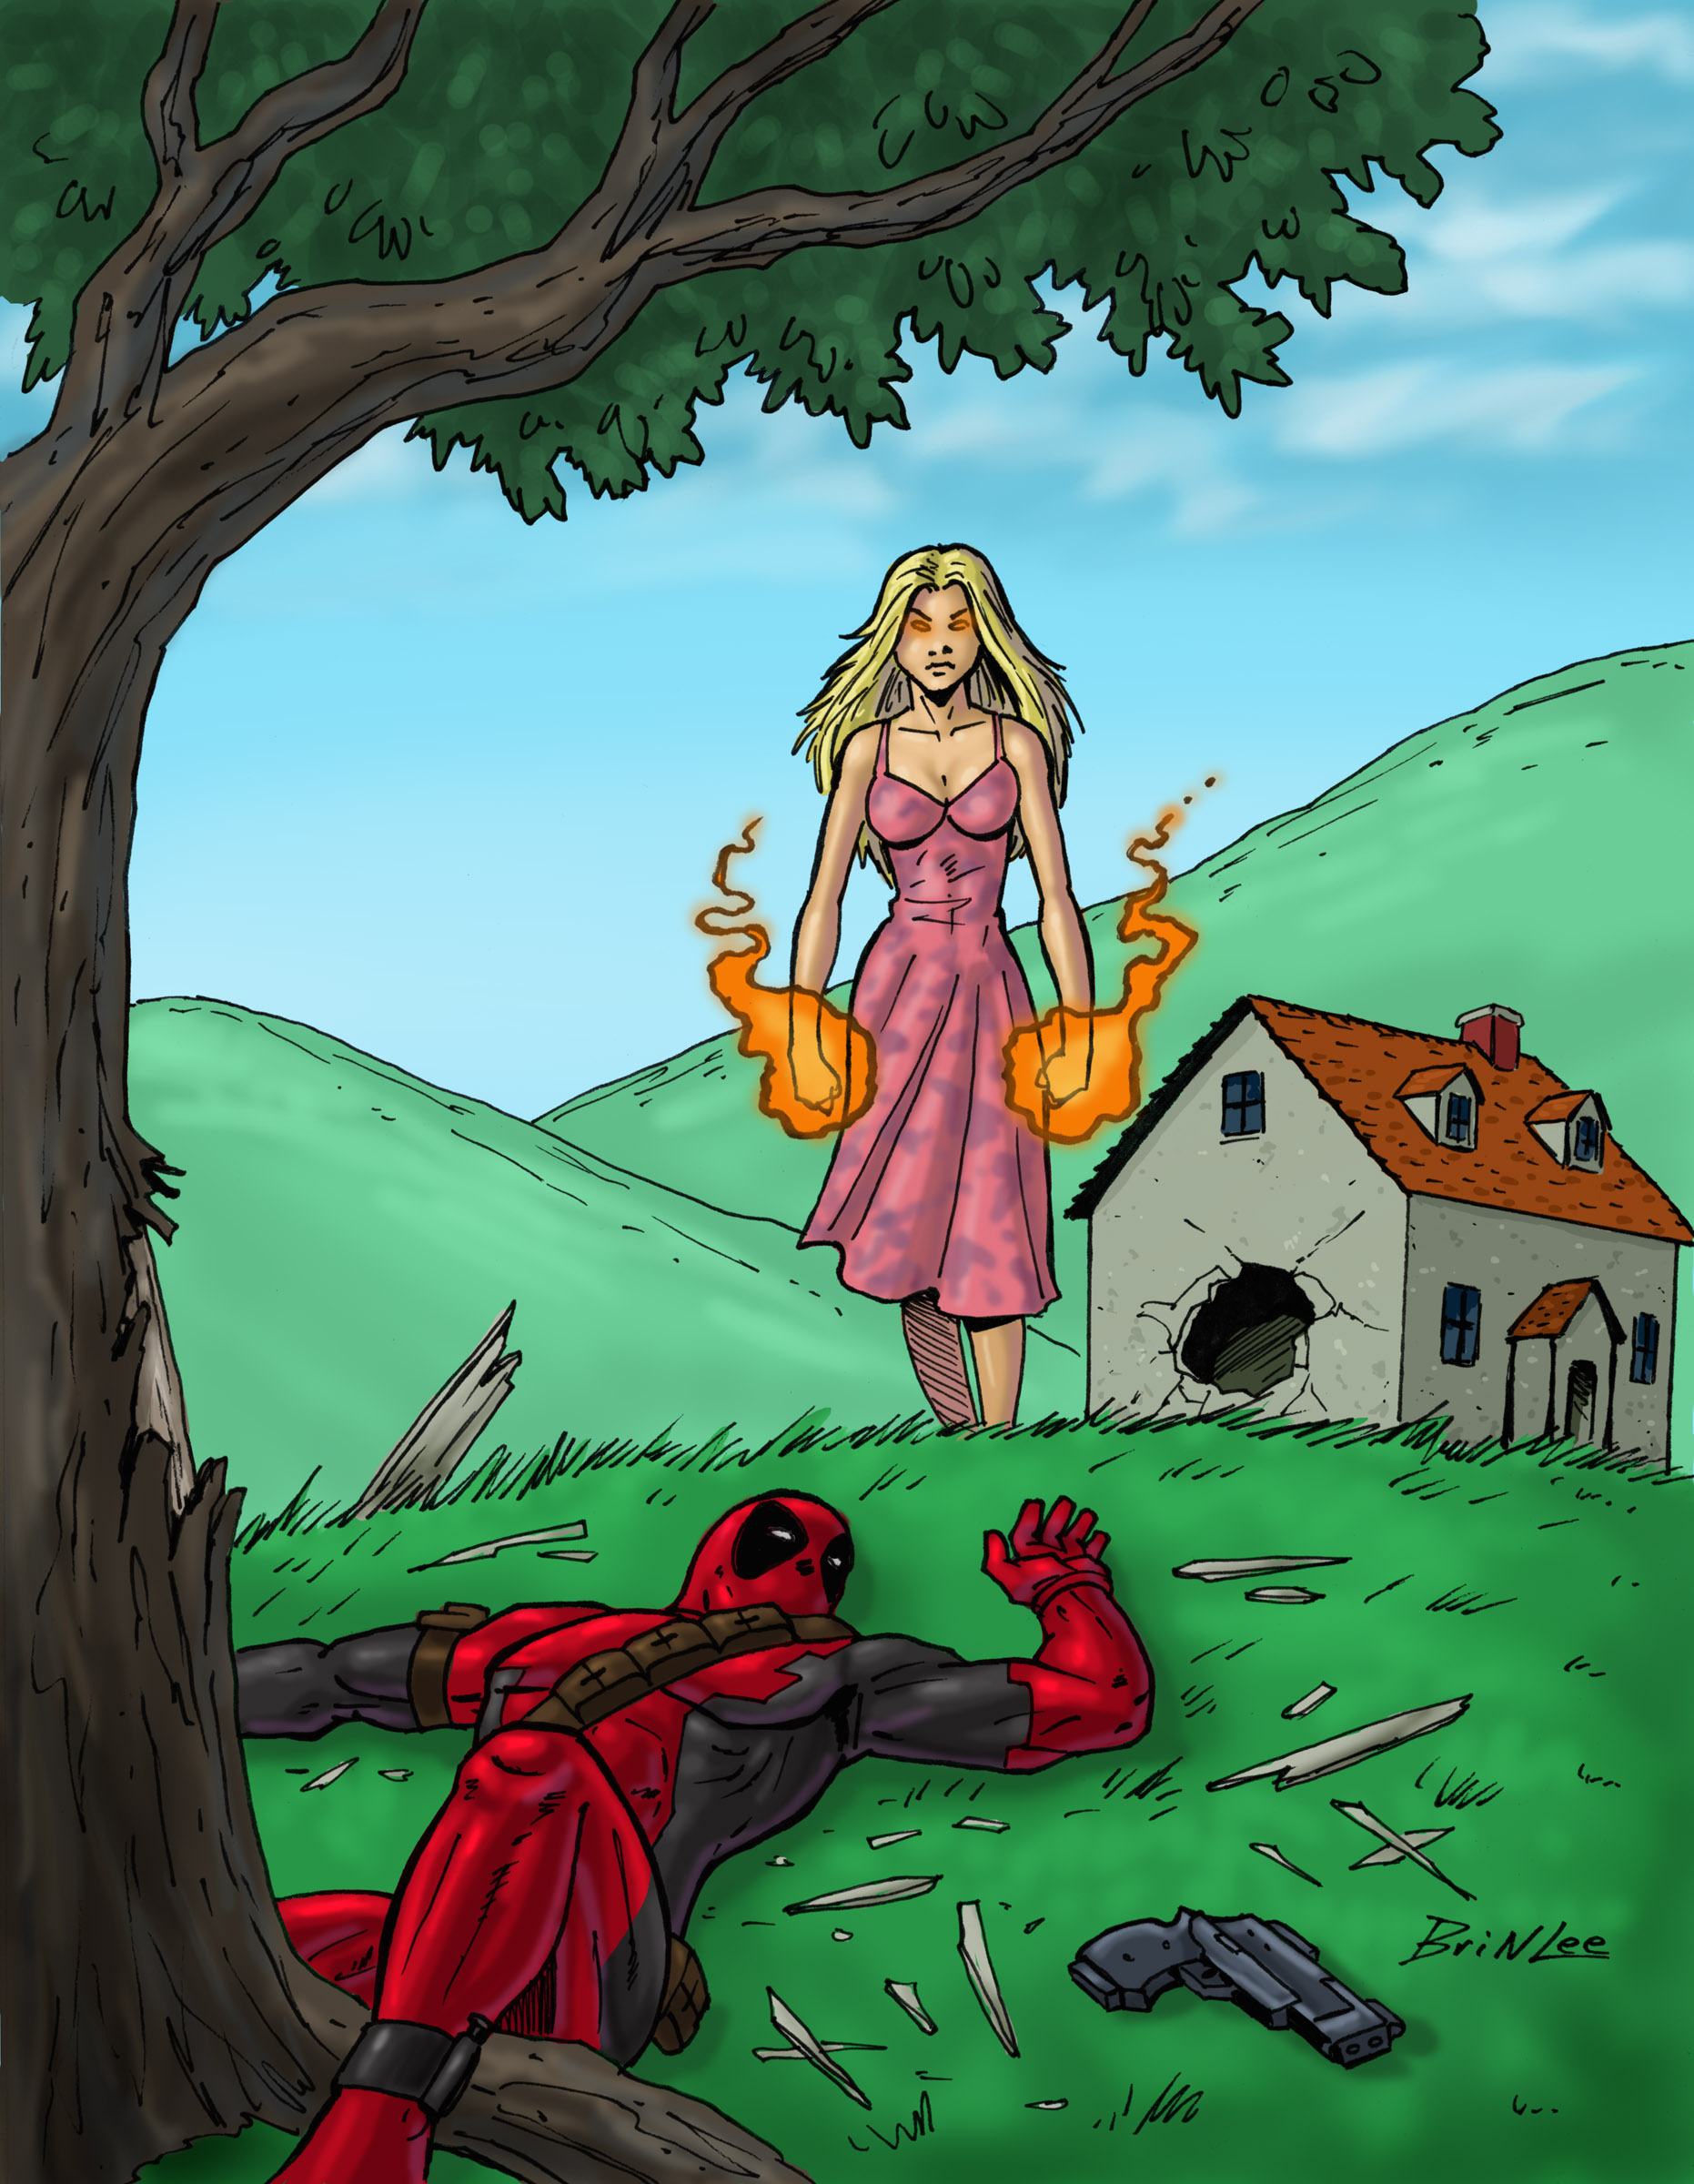 X-men Supreme Issue 36: Deadpool Part 1 Panel 1